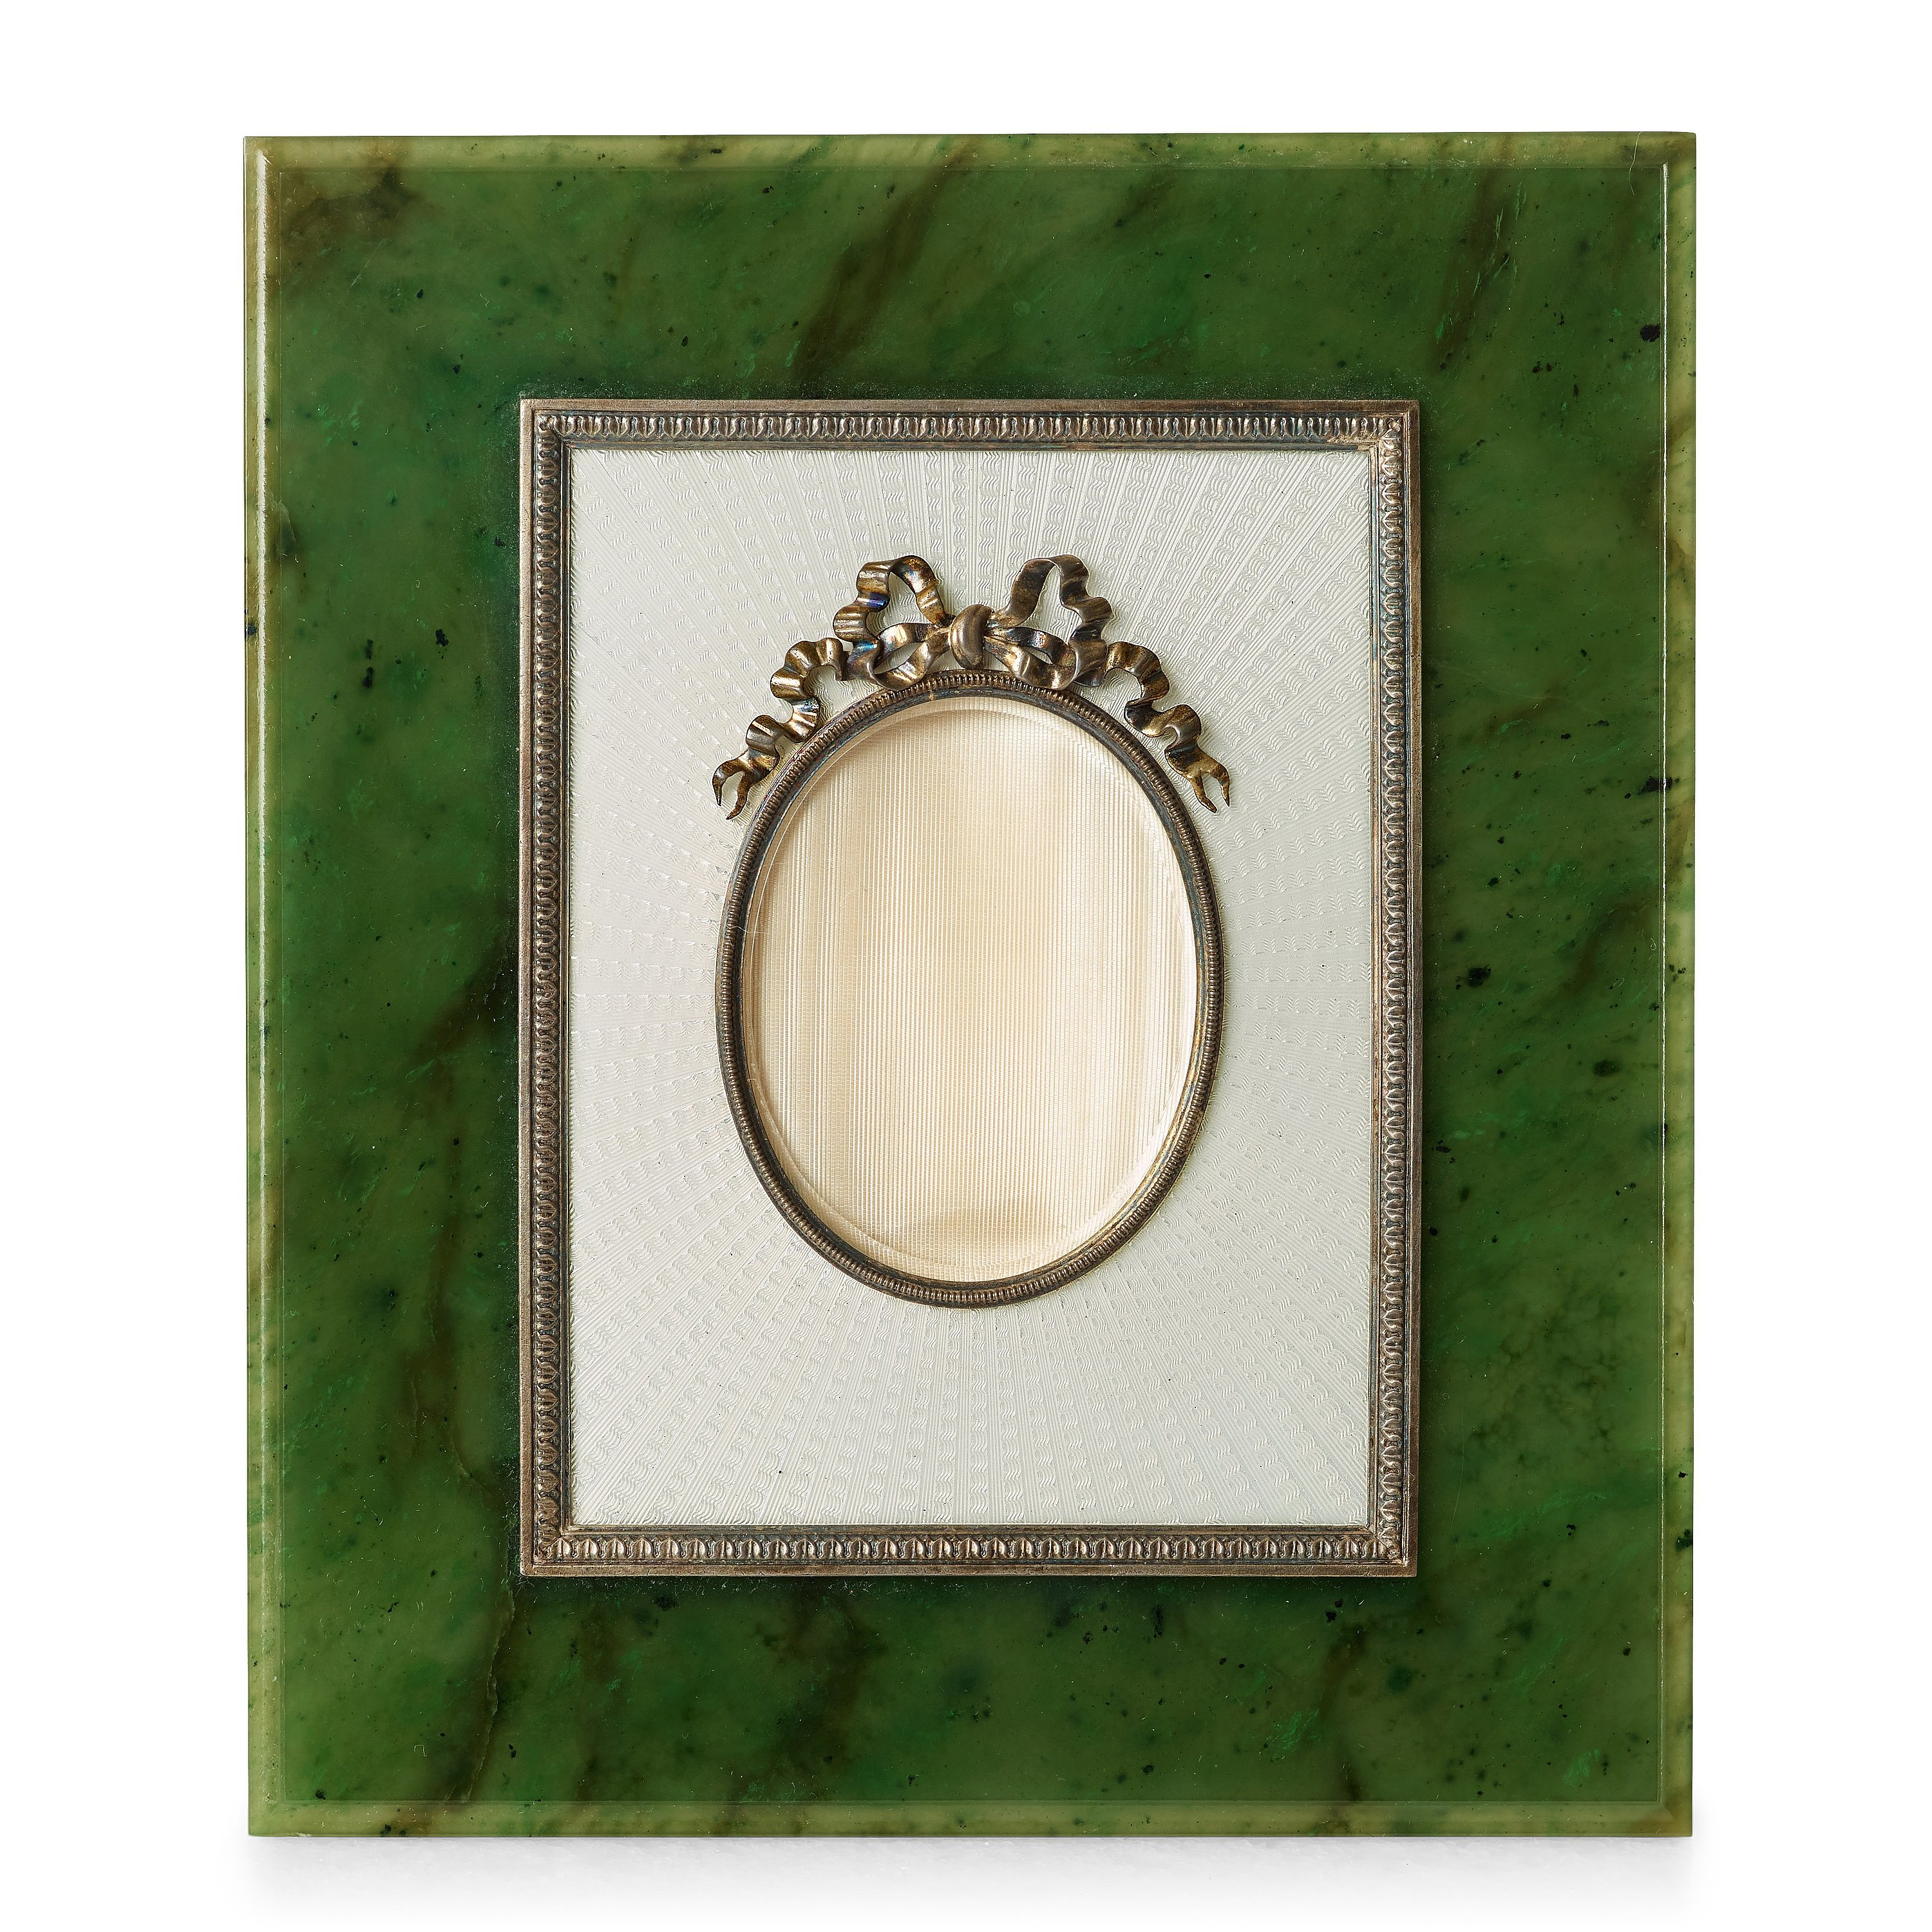 A Fabergé nephrite, silver and enamel frame, workmaster Antti ...